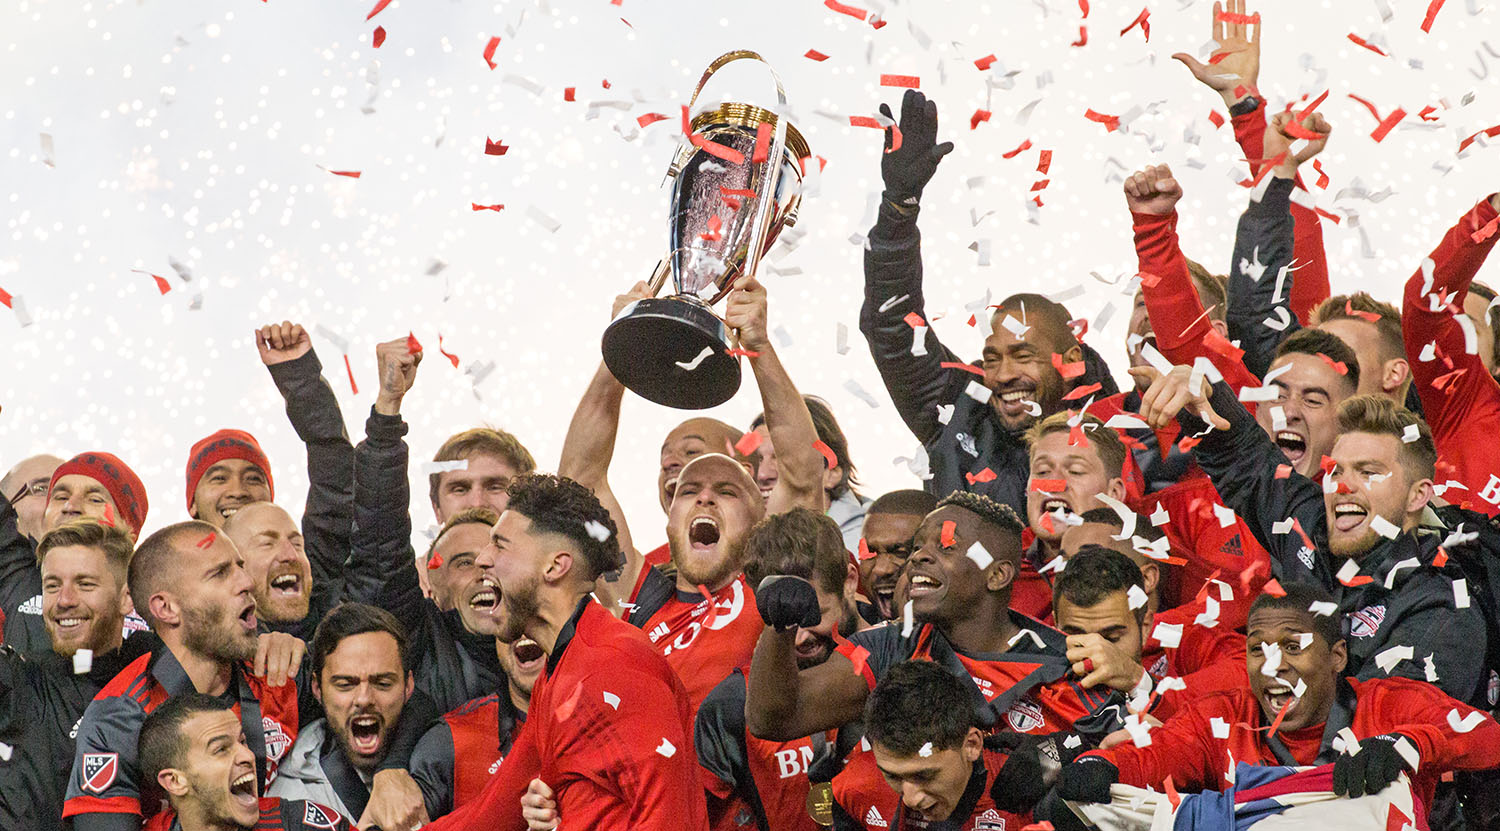 Confetti and smoke fills the stadium as Michael Bradley celebrates with Toronto FC to take home the 2017 MLS Cup.Image by Dennis Marciniak of denMAR Media.